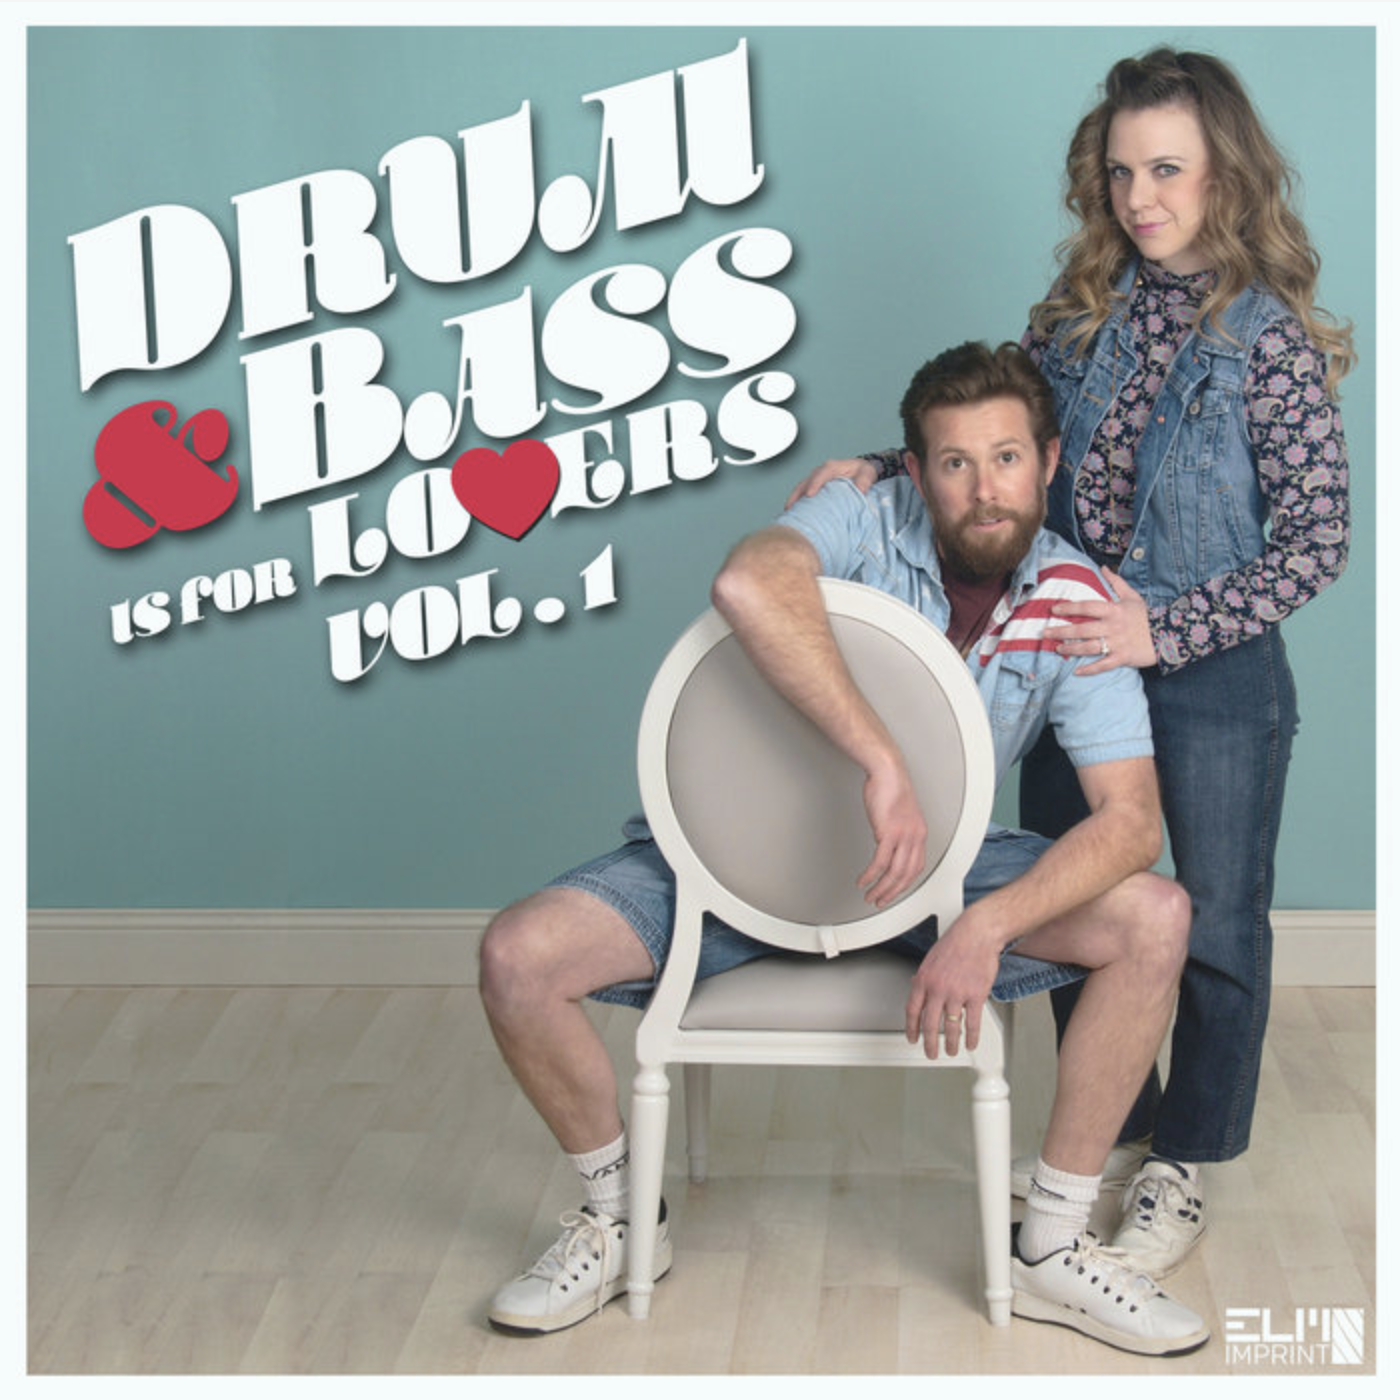 drum & bass is for lovers volume 1 cover